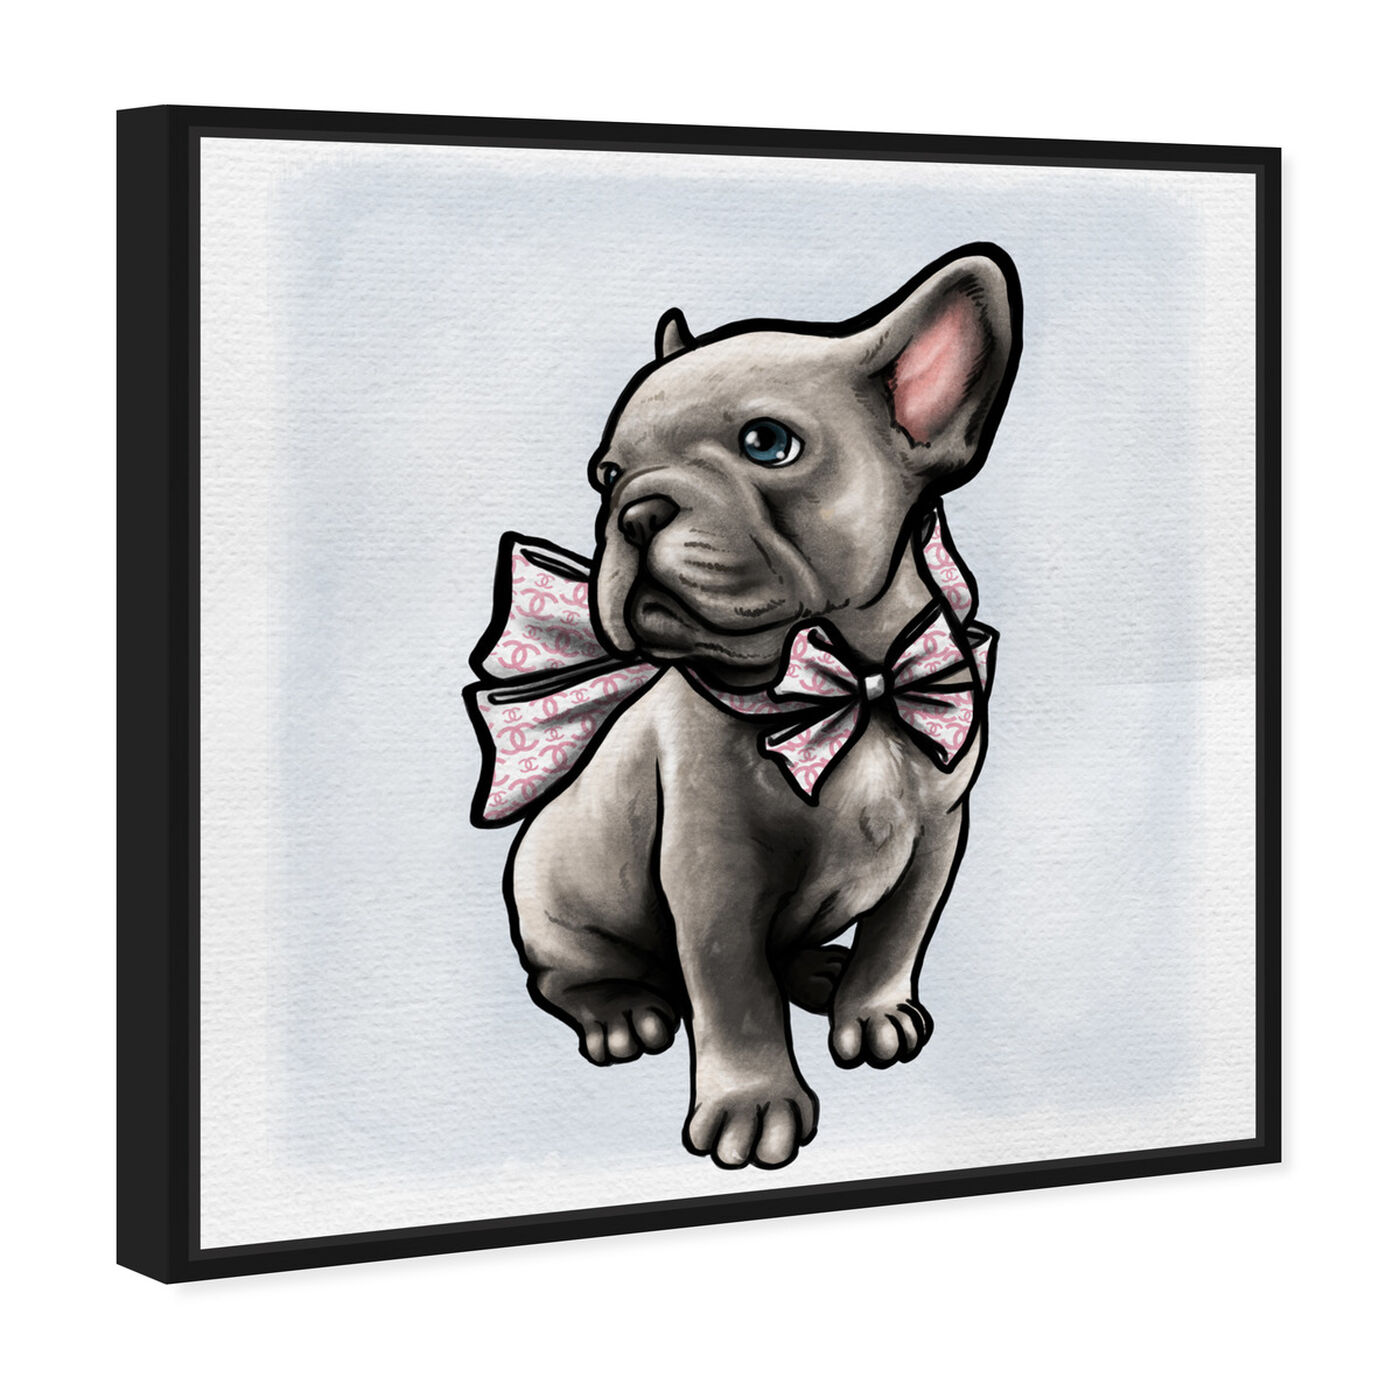 Angled view of Frenchie with Bow featuring animals and dogs and puppies art.